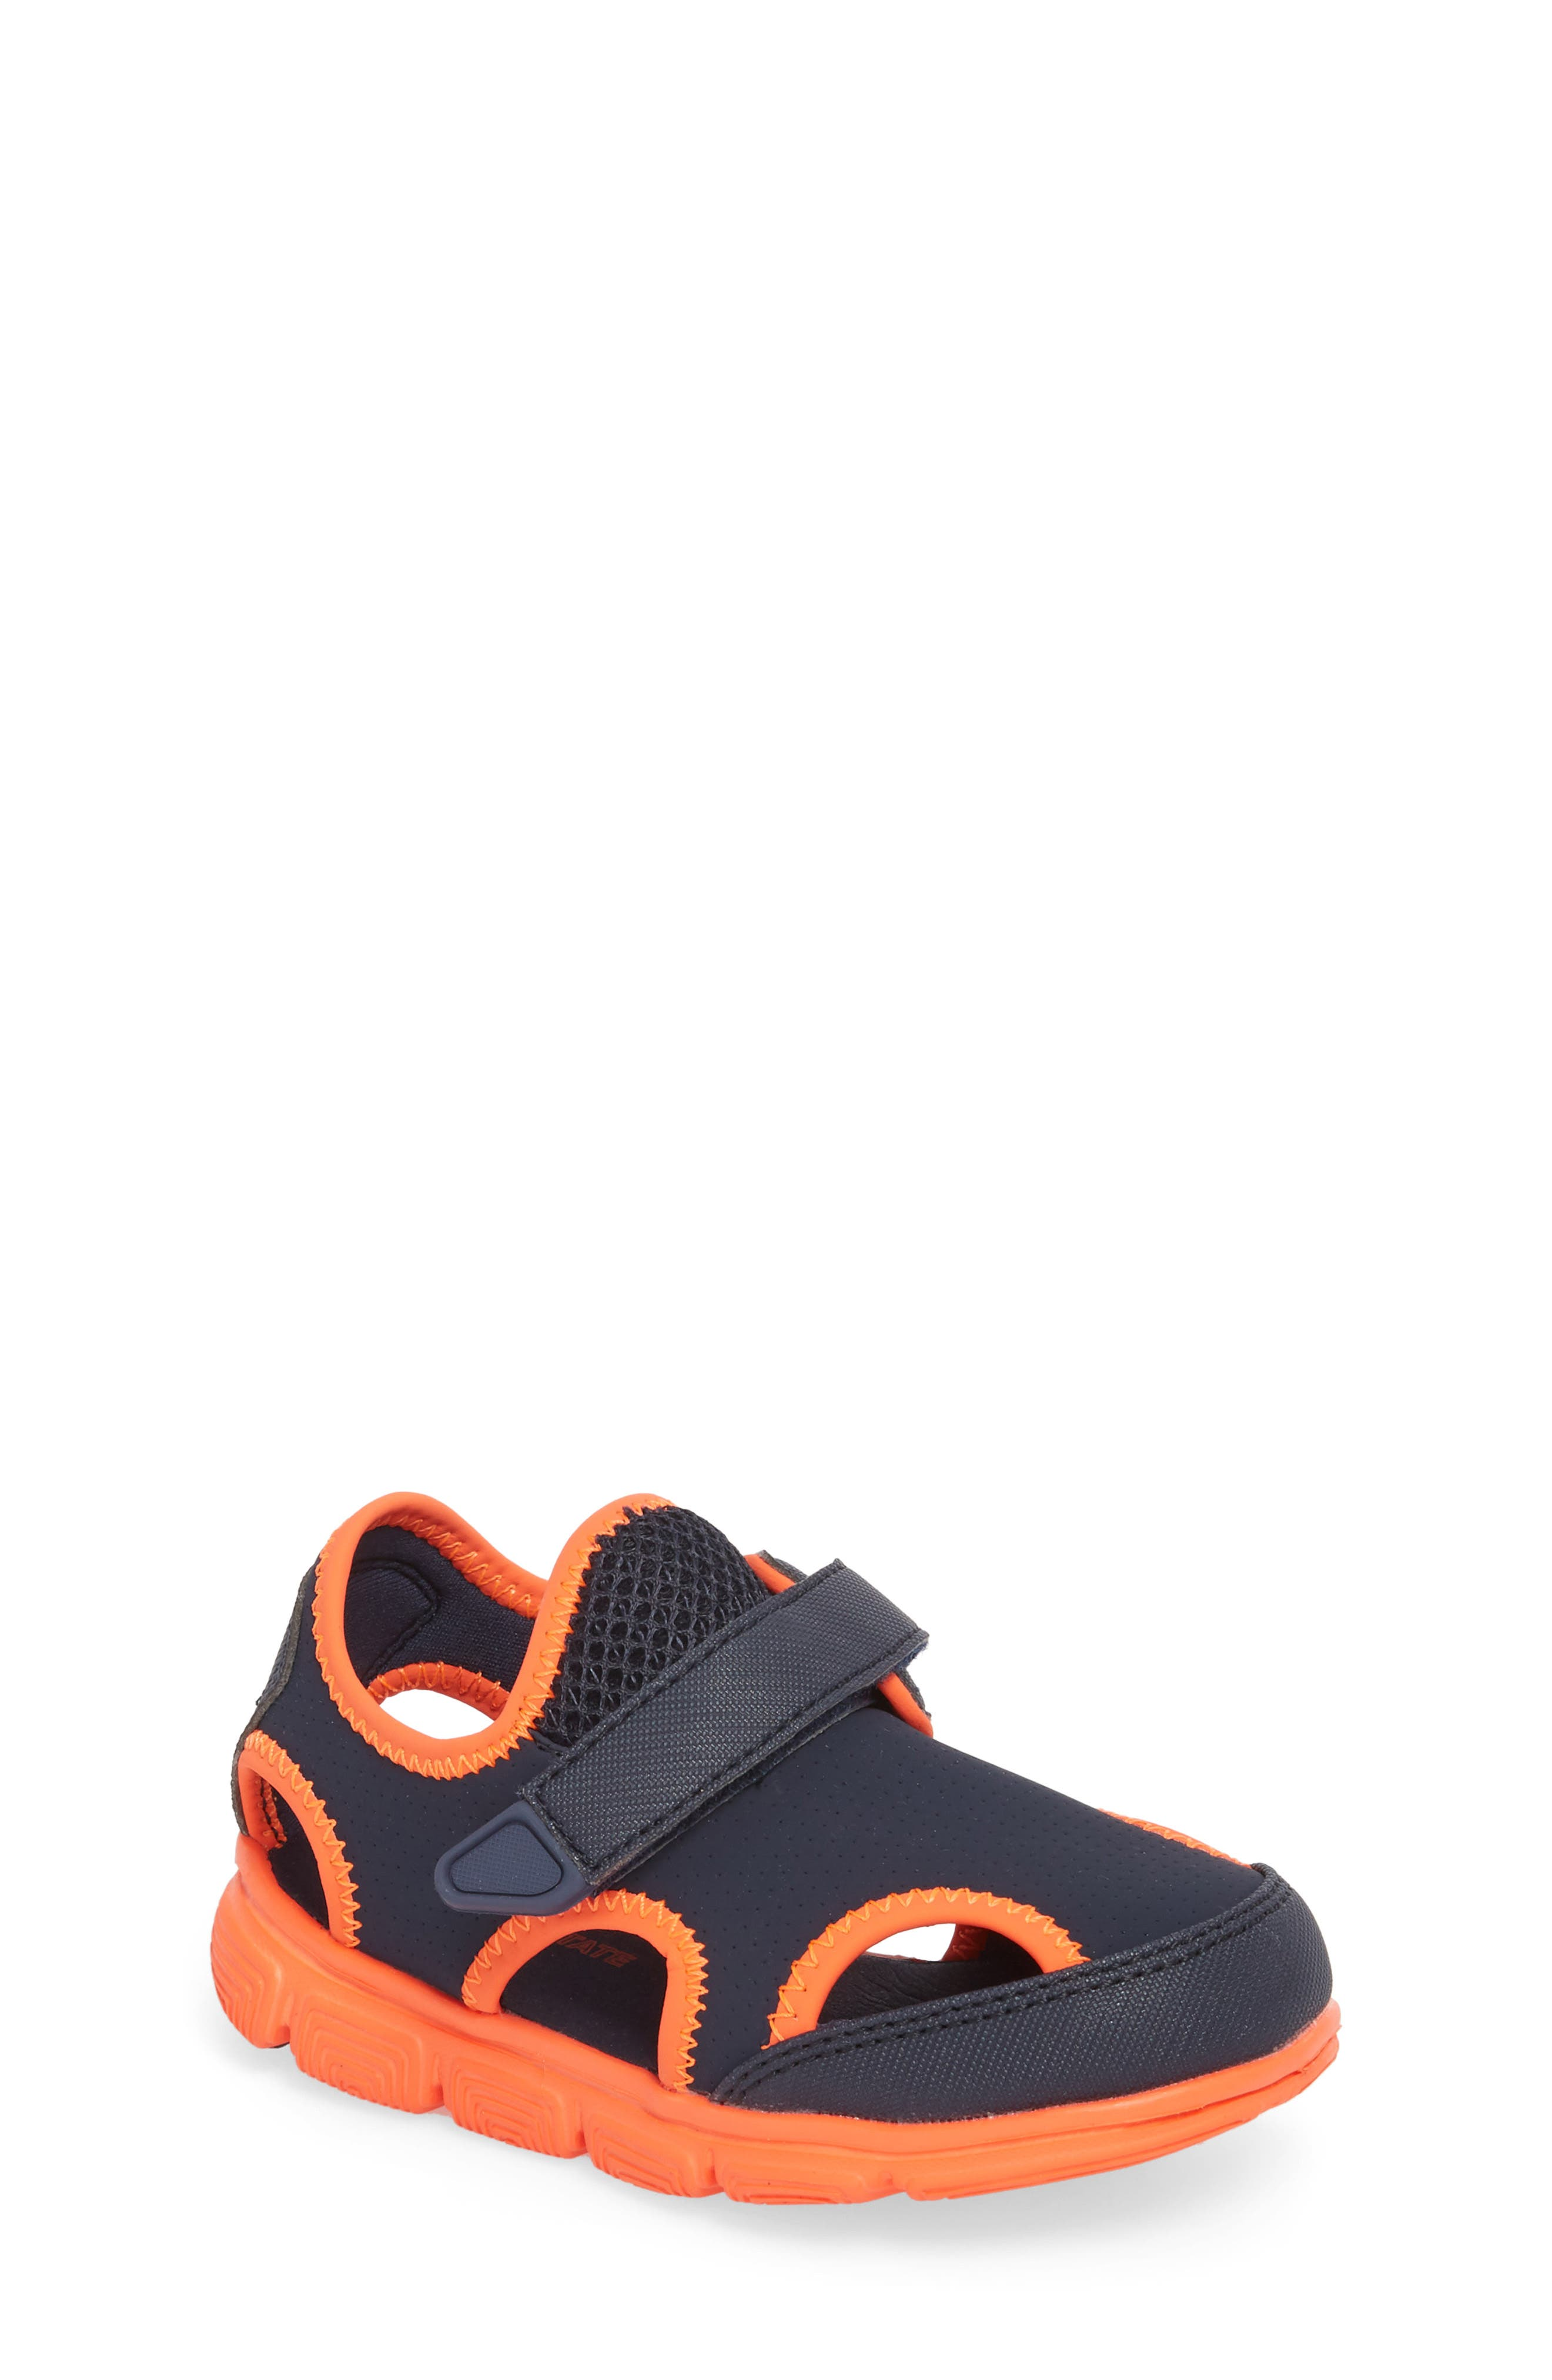 Tucker + Tate Eric Water Sandal (Baby, Walker & Toddler)